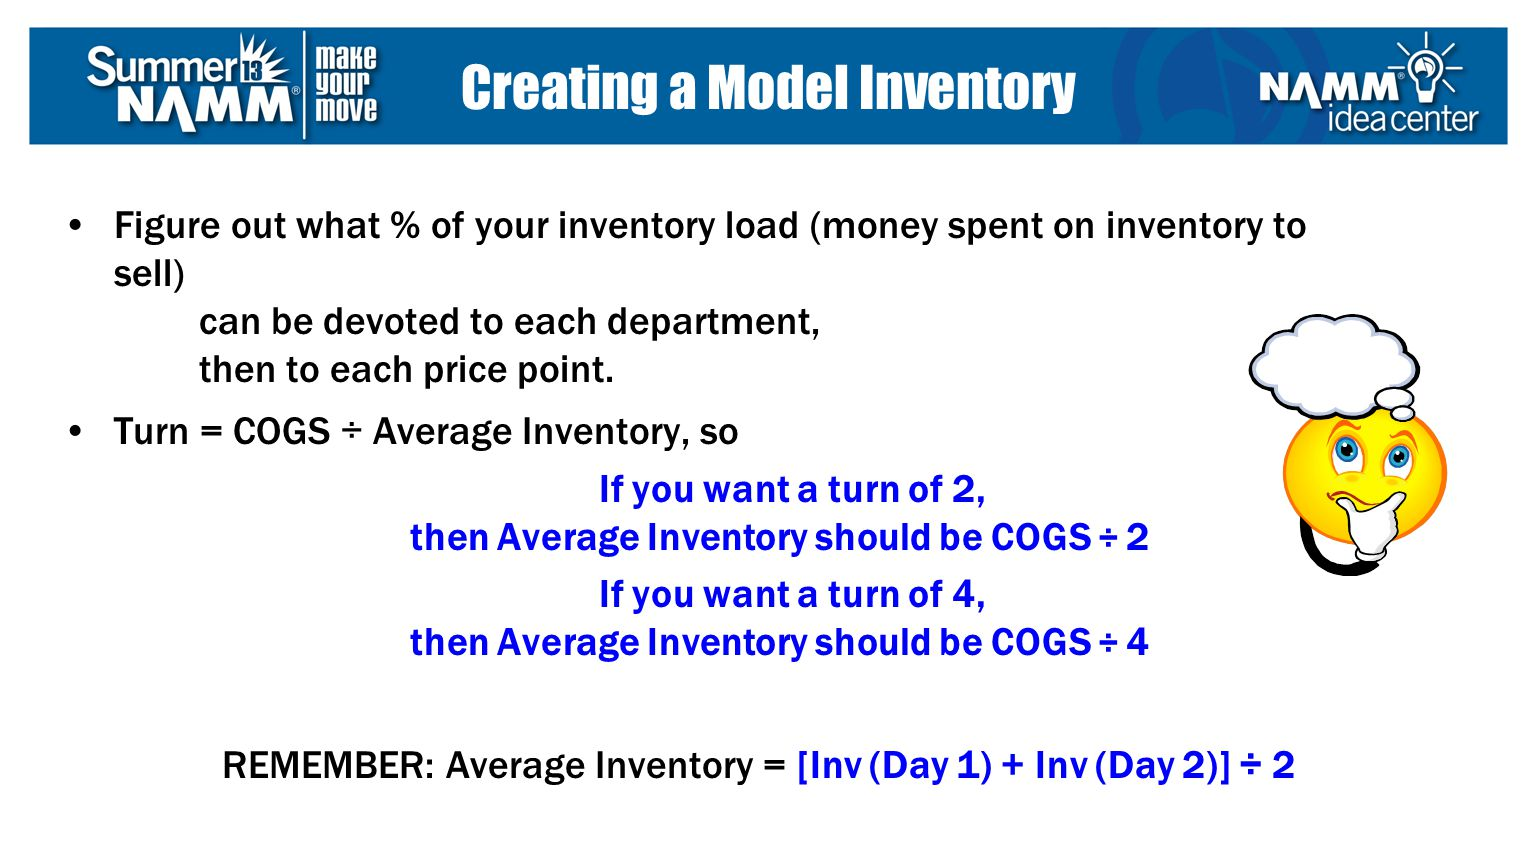 Figure out what % of your inventory load (money spent on inventory to sell) can be devoted to each department, then to each price point.